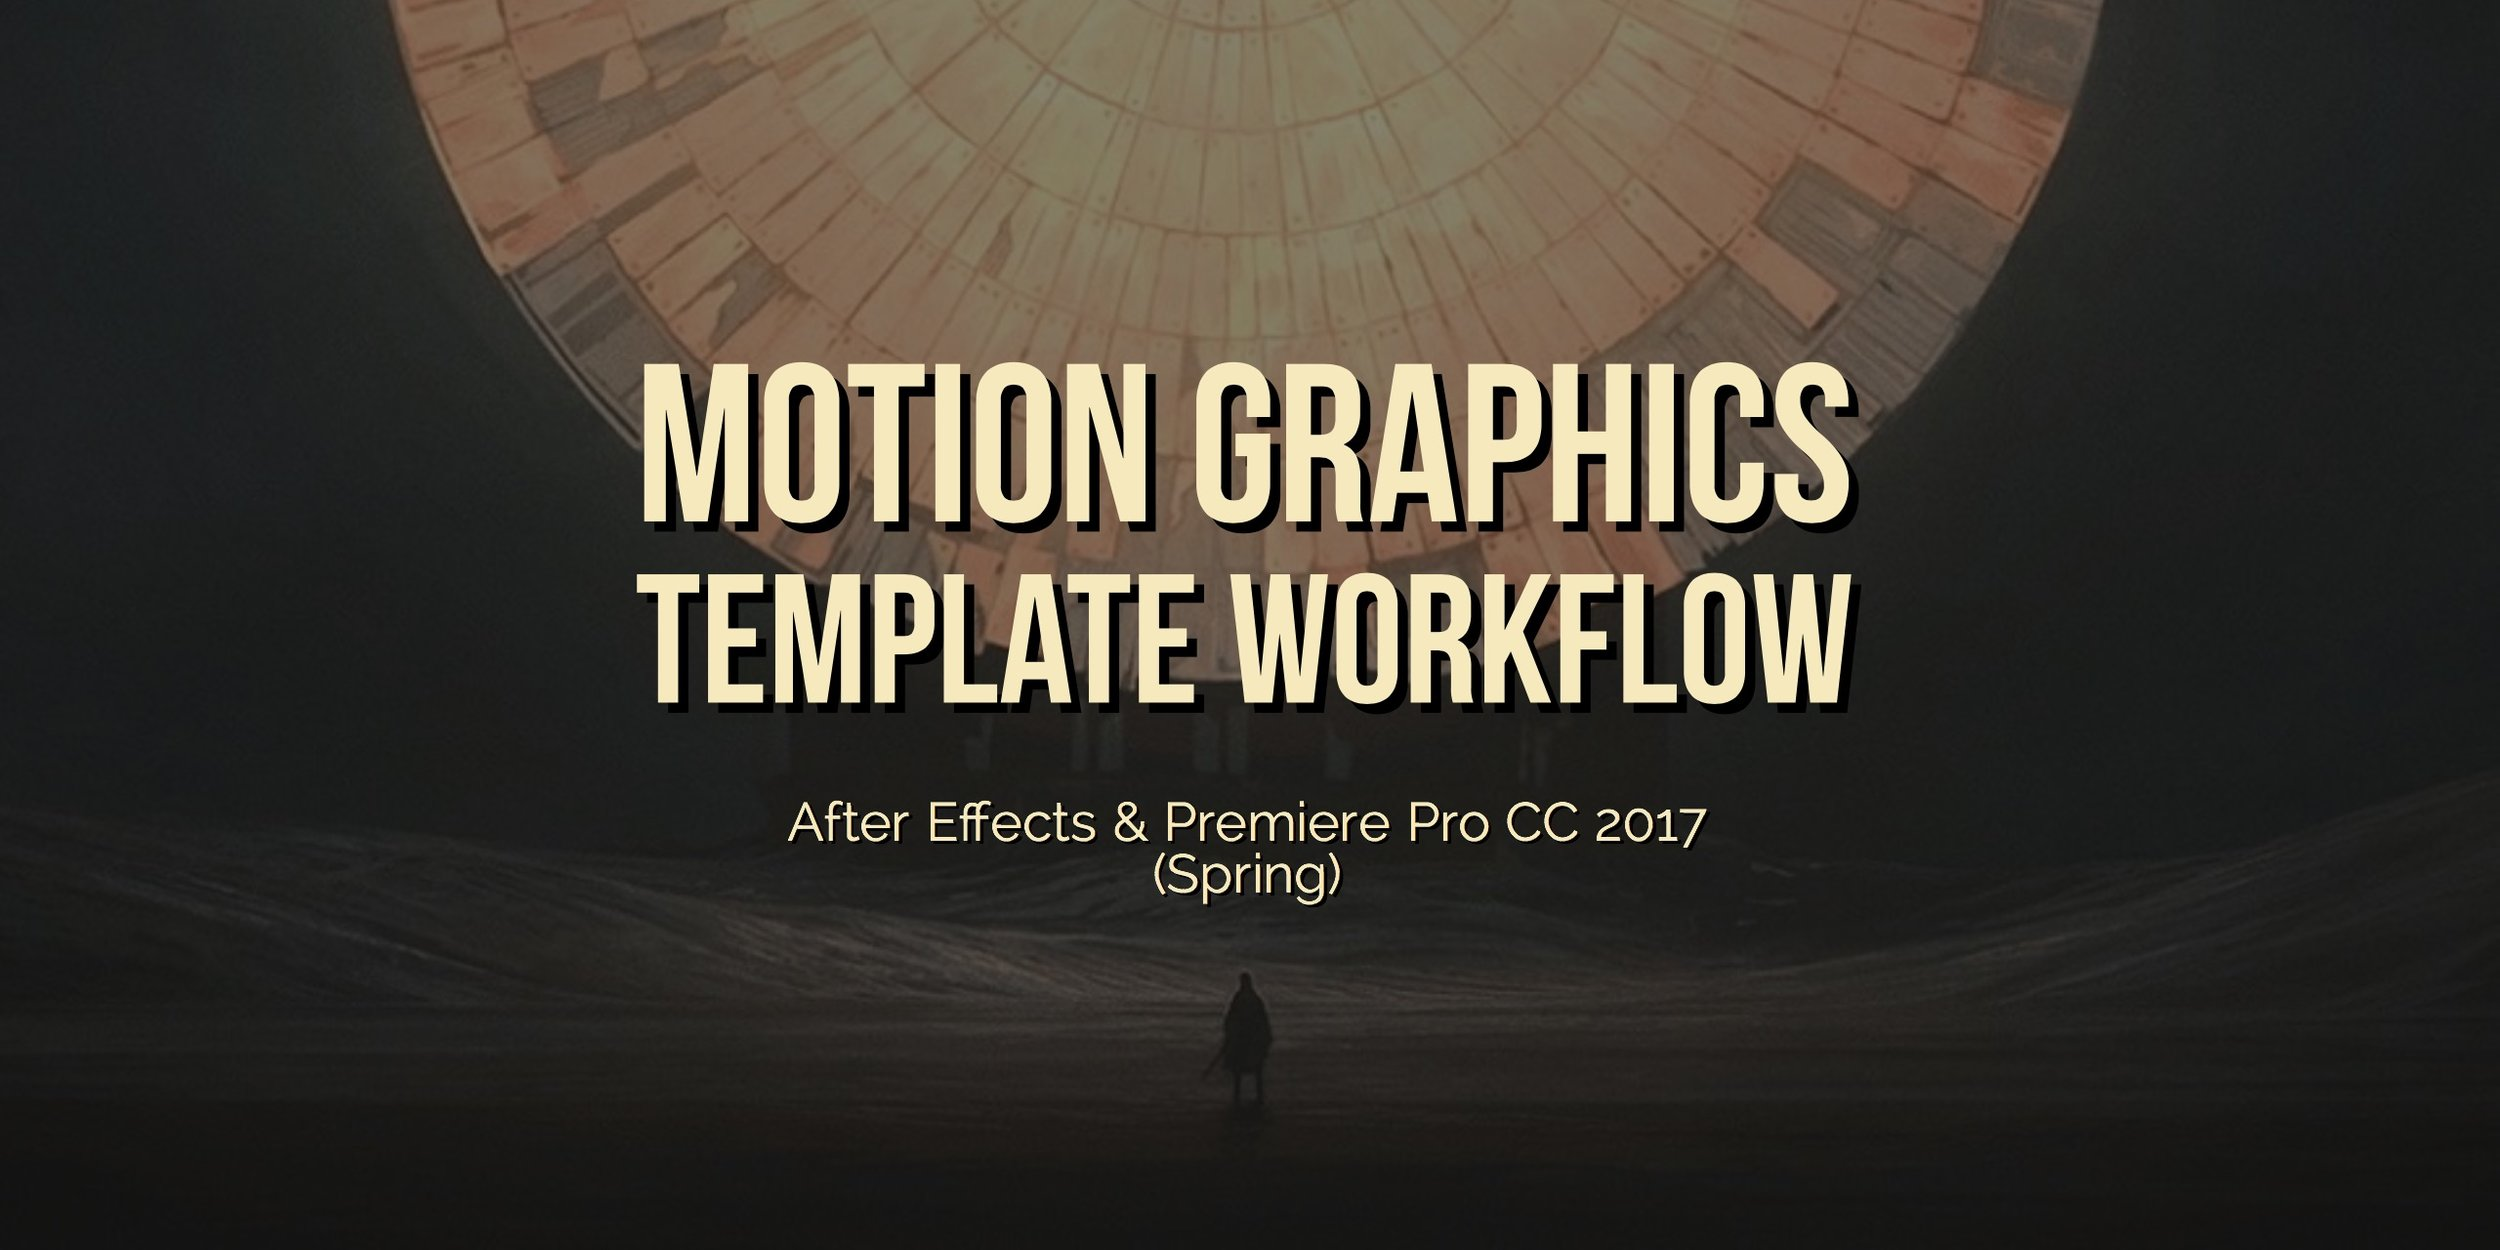 motion-graphics-template-workflow-after-effects-premiere-pro-cc-2017